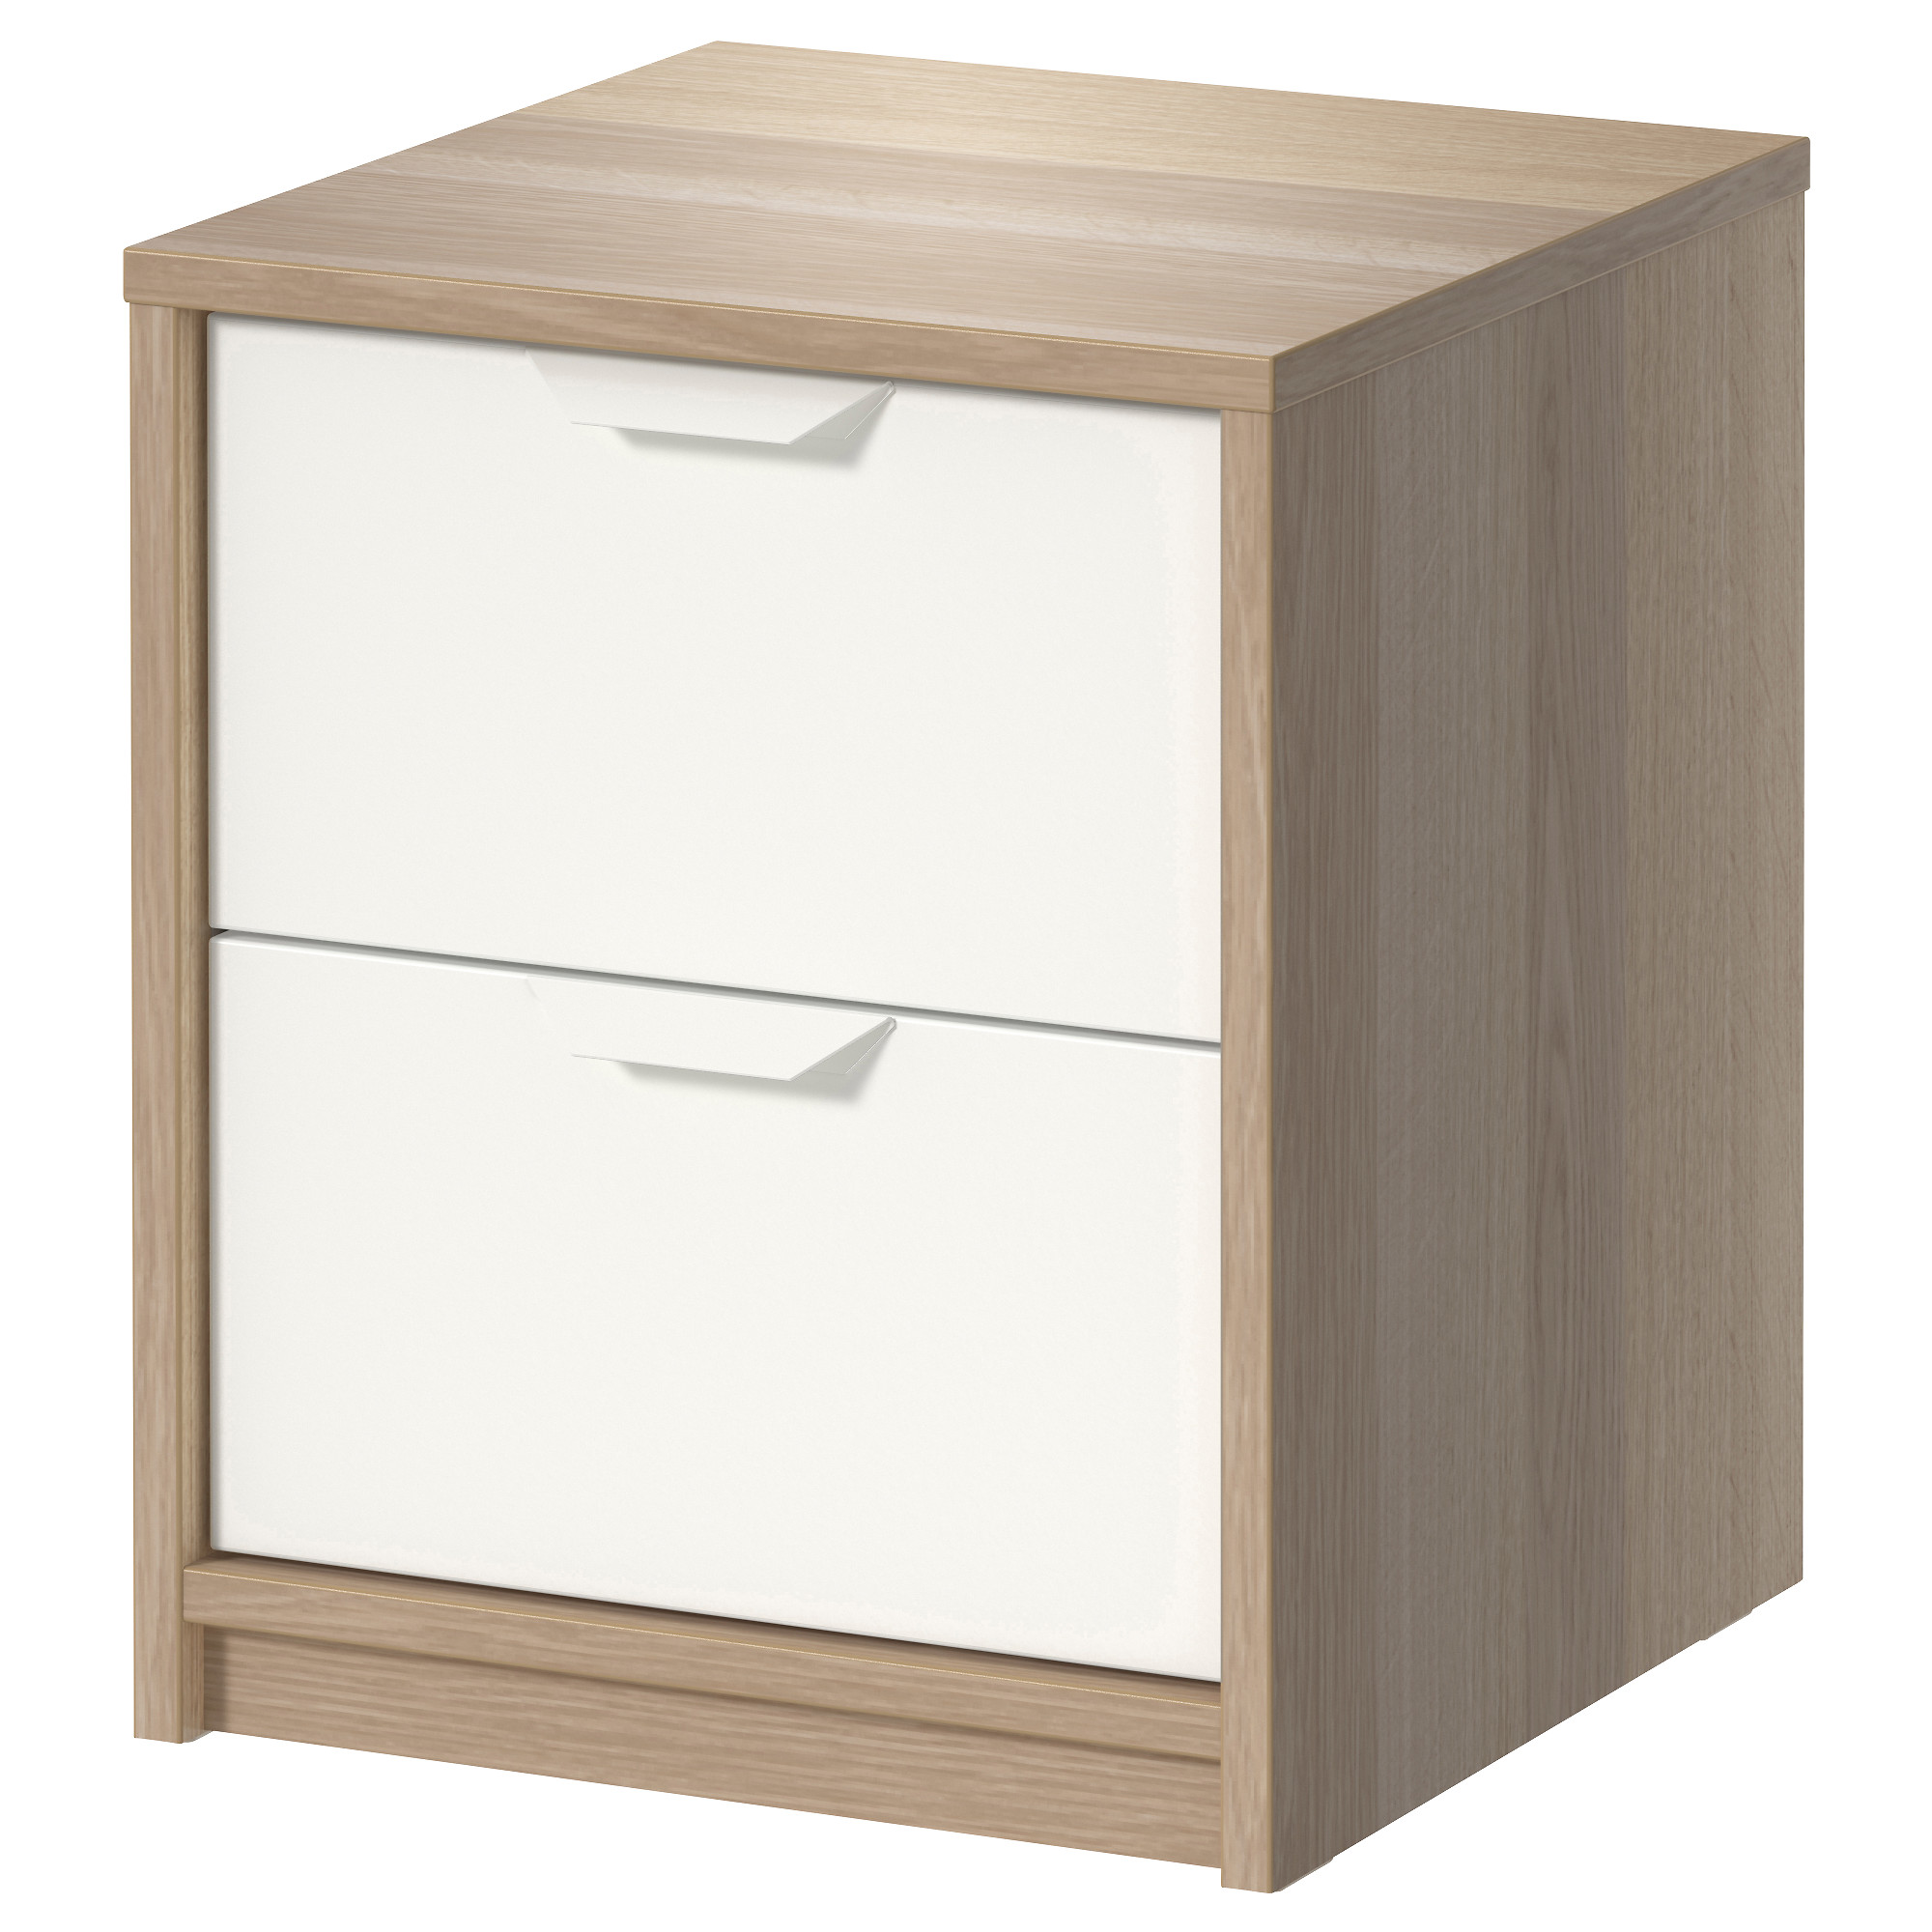 Drawer Chest | Chest of Drawers Vs Dresser | Grey Dressers